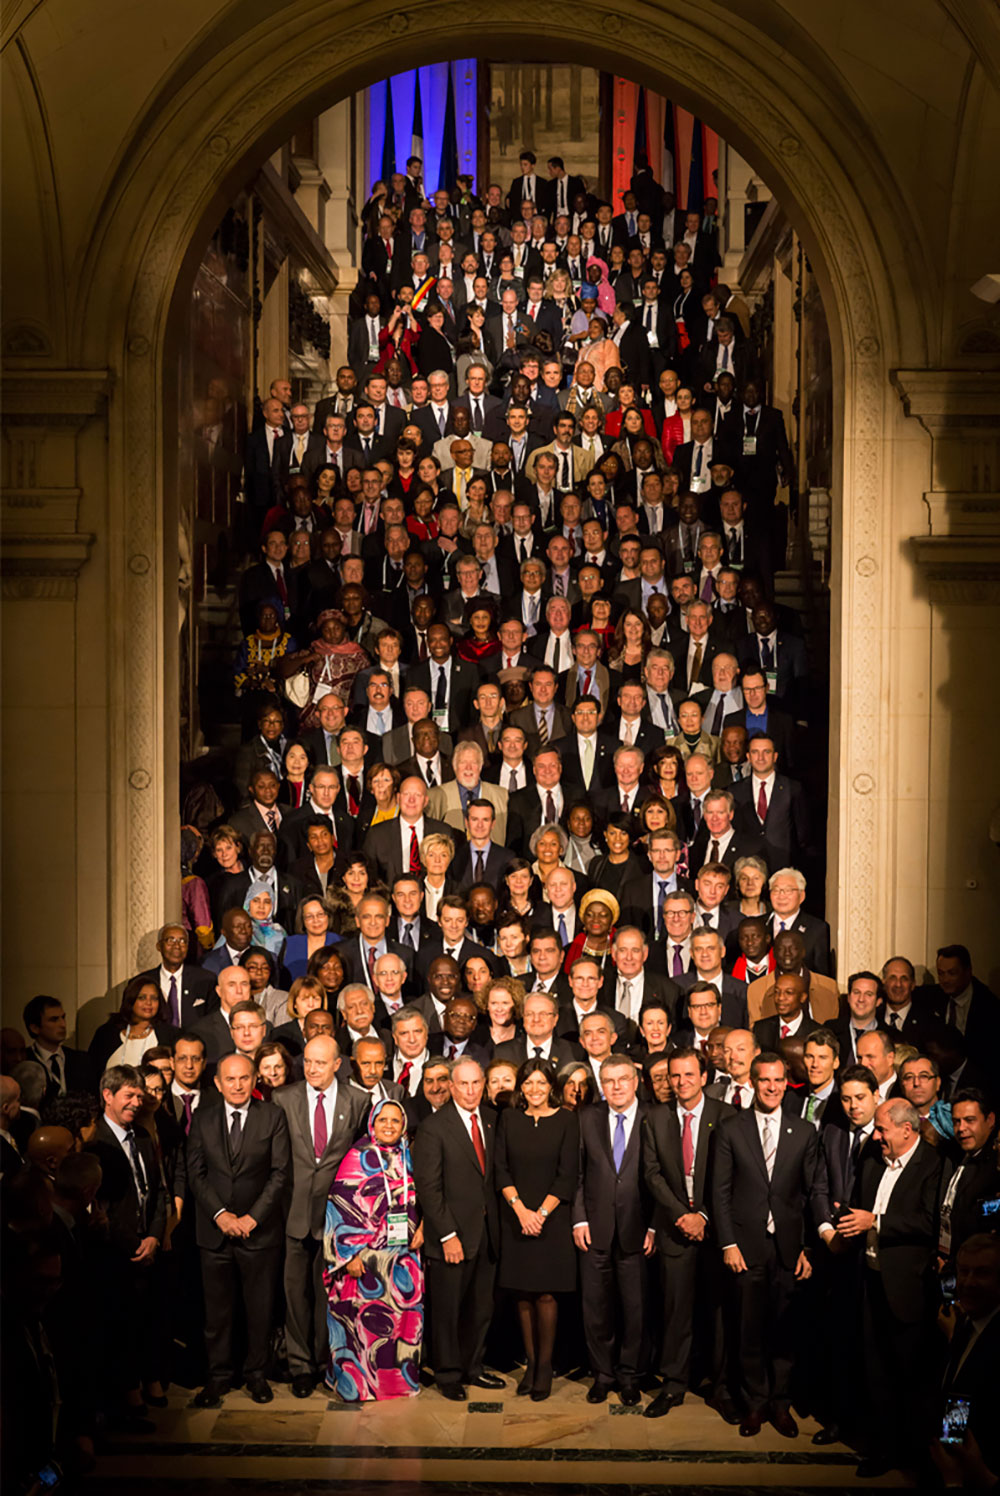 More than 400 mayors from around the world gather in Paris's Hôtel de Ville at the Climate Summit for Local Leaders, part of COP21, on December 4th, 2015